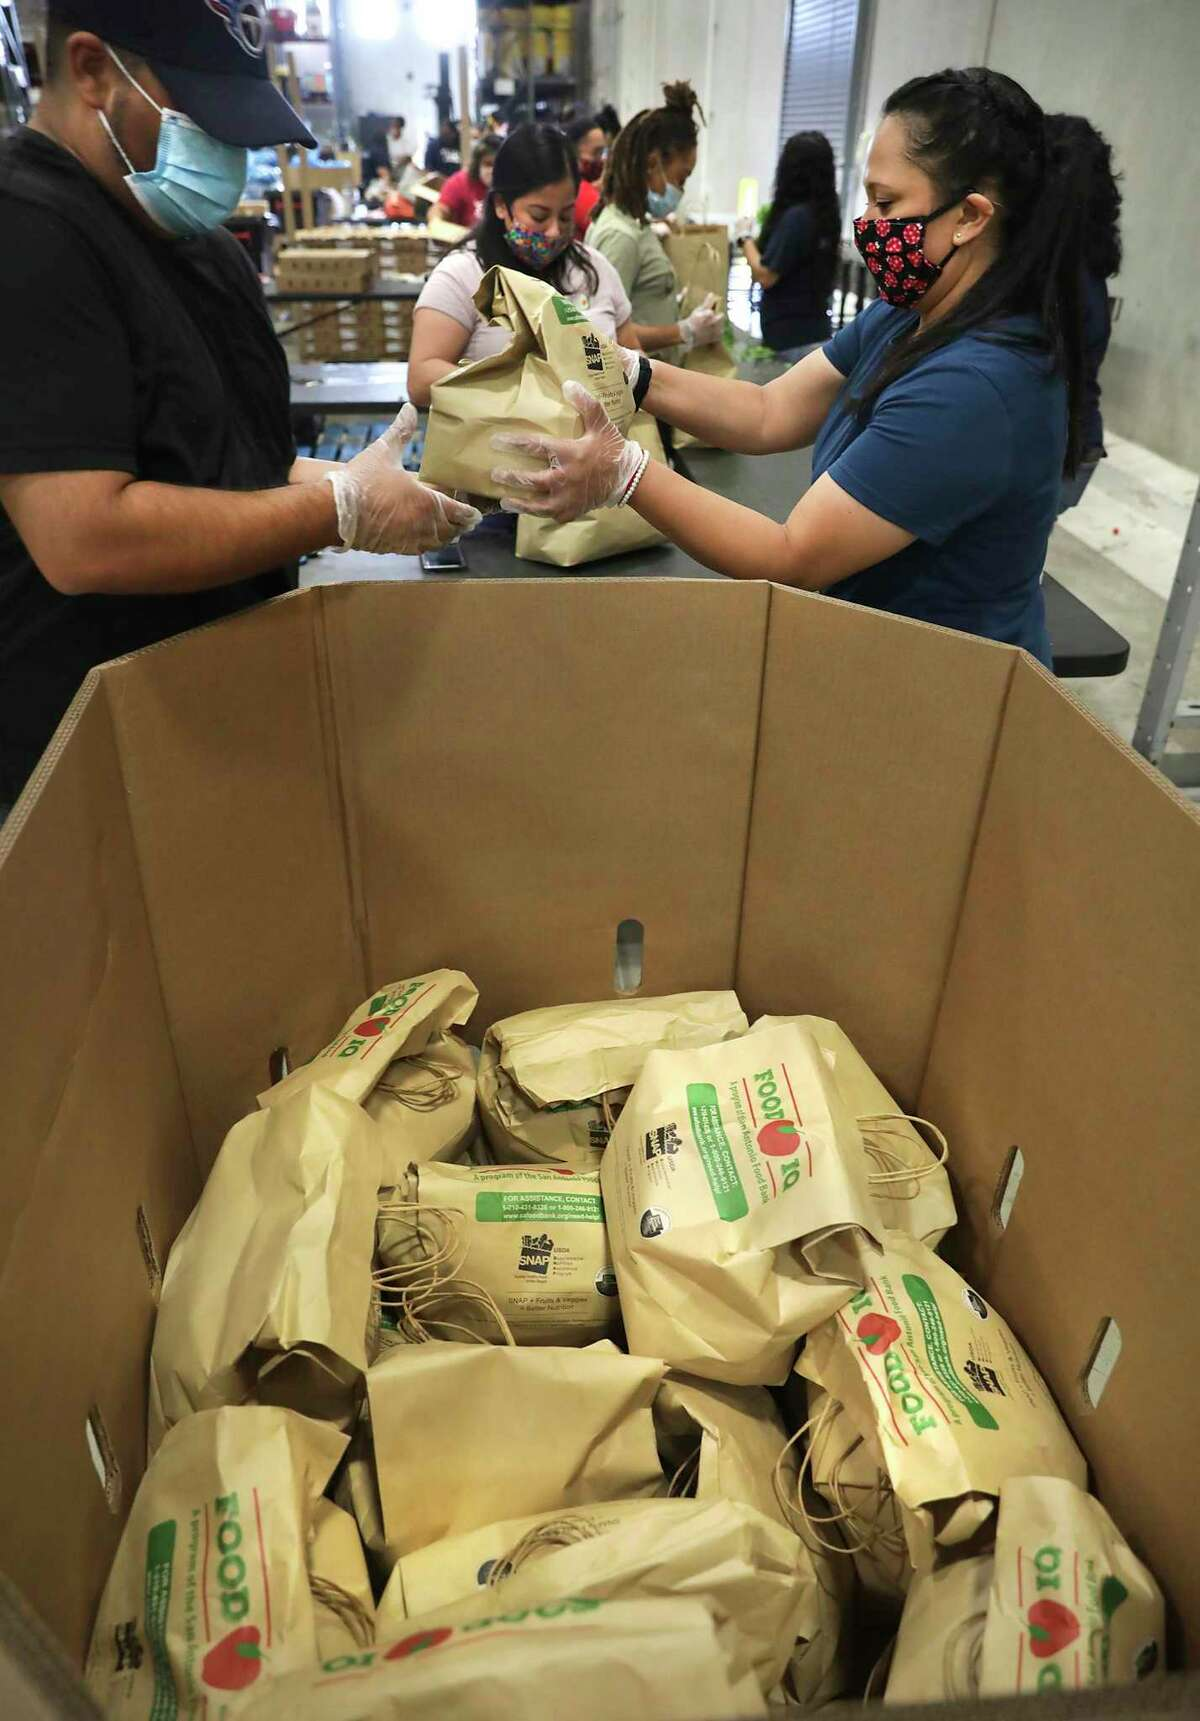 Volunteers from Pre-K for SA load bags of produce at the San Antonio Food Bank on Thursday, April 16, 2020, in preparation for an emergency food distribution at the Alamodome on Friday.